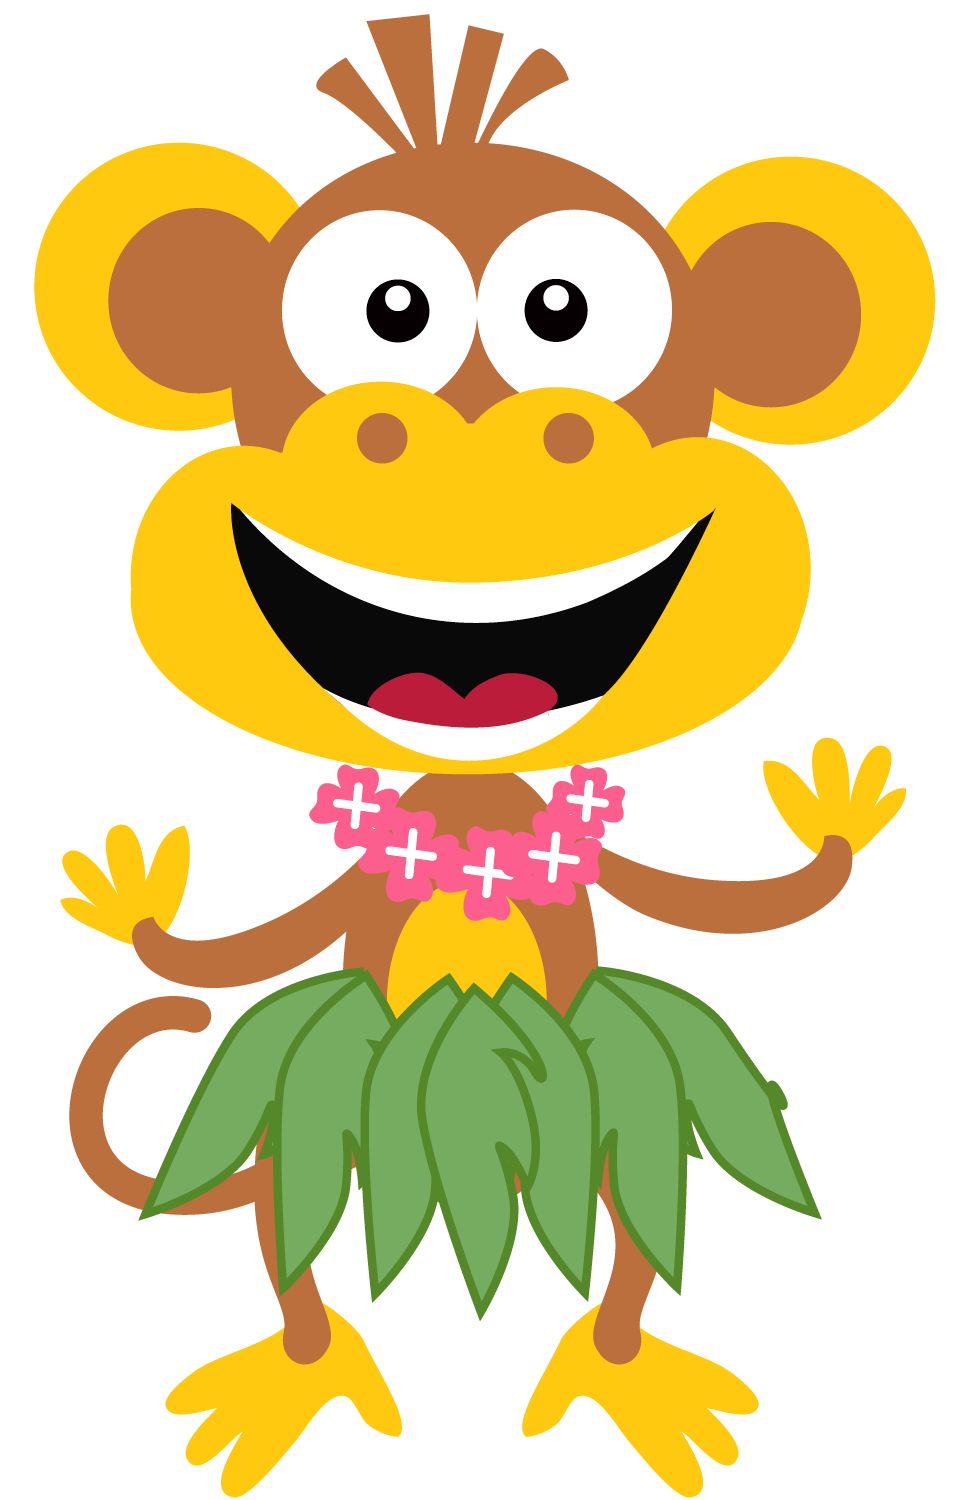 Silly summer fun free clipart.